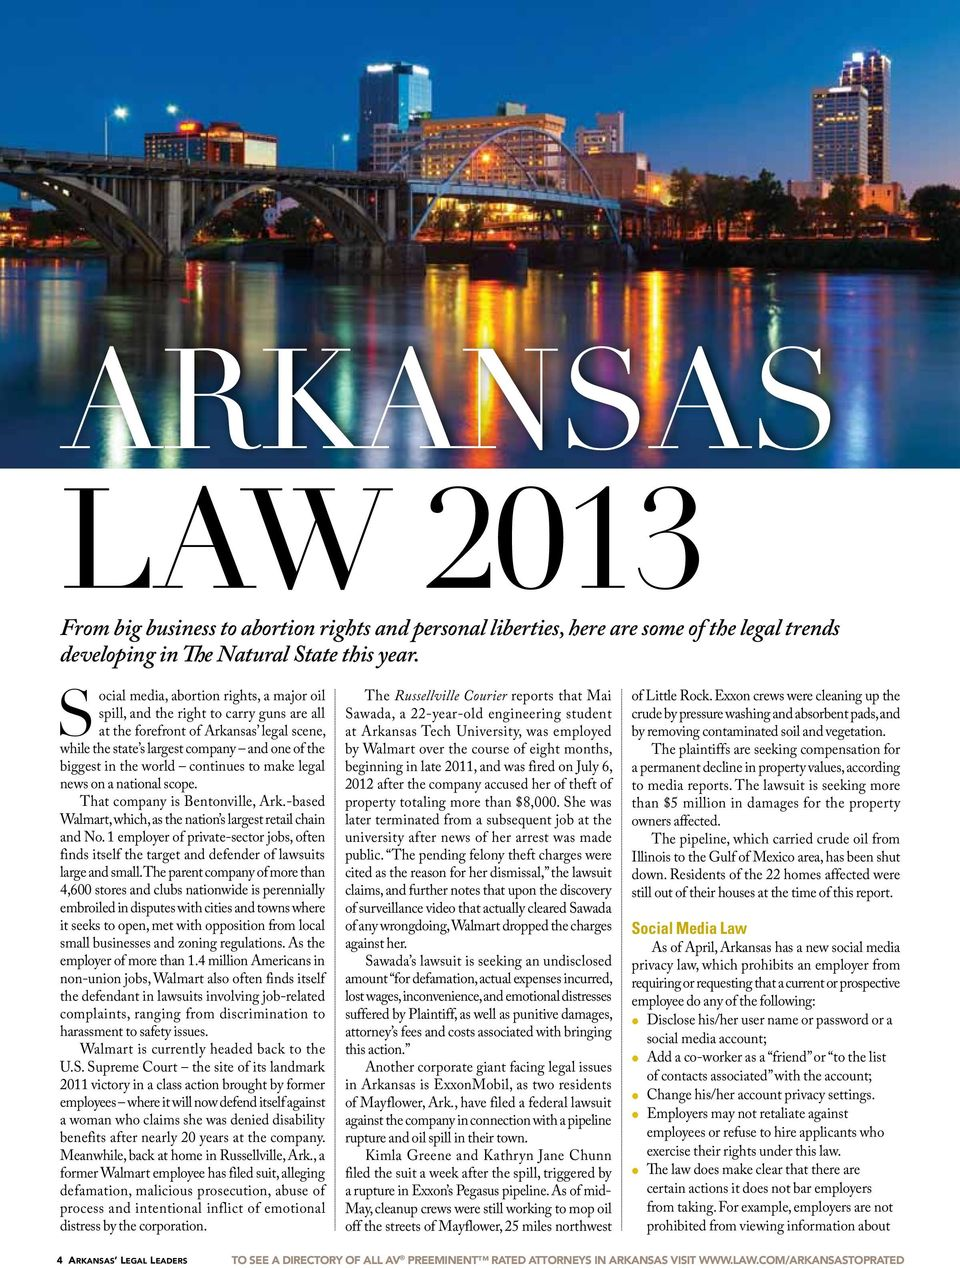 Social media, abortion rights, a major oil spill, and the right to carry guns are all at the forefront of Arkansas legal scene, while the state s largest company and one of the biggest in the world